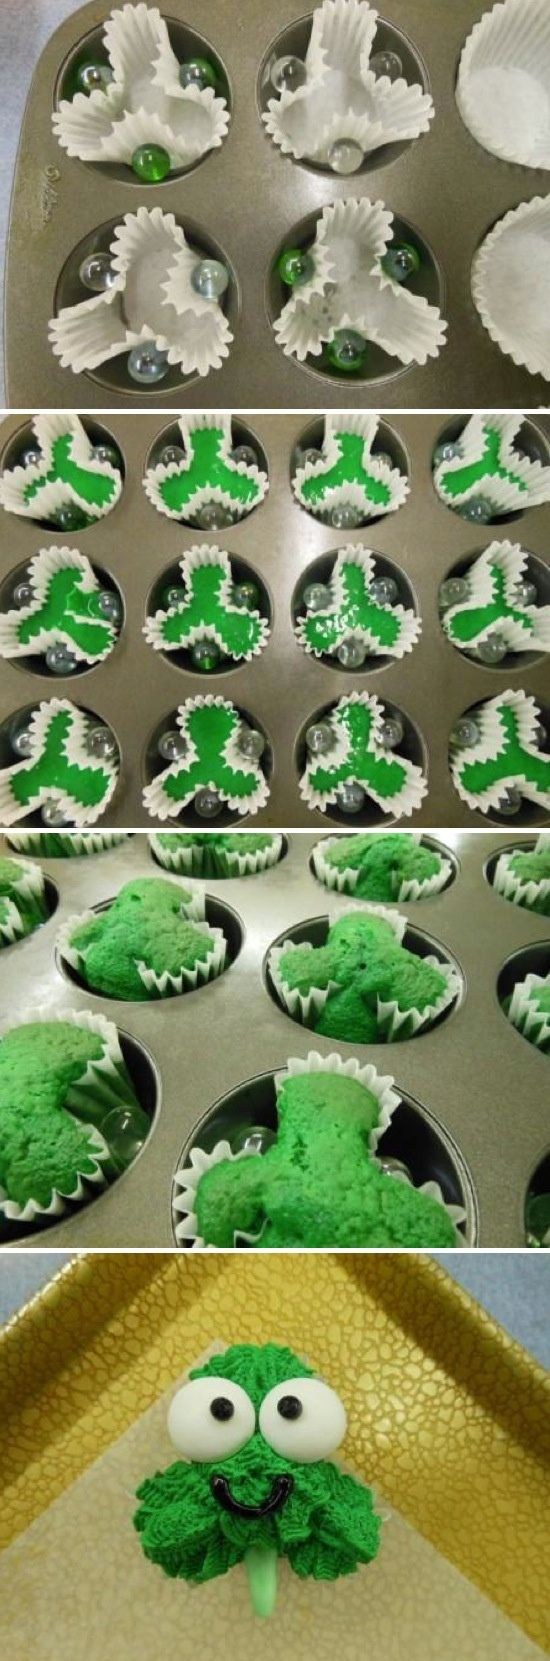 I think I am going to try these, except I won't do the weird eyes and mouth! They will look so cute just as shamrocks. :)